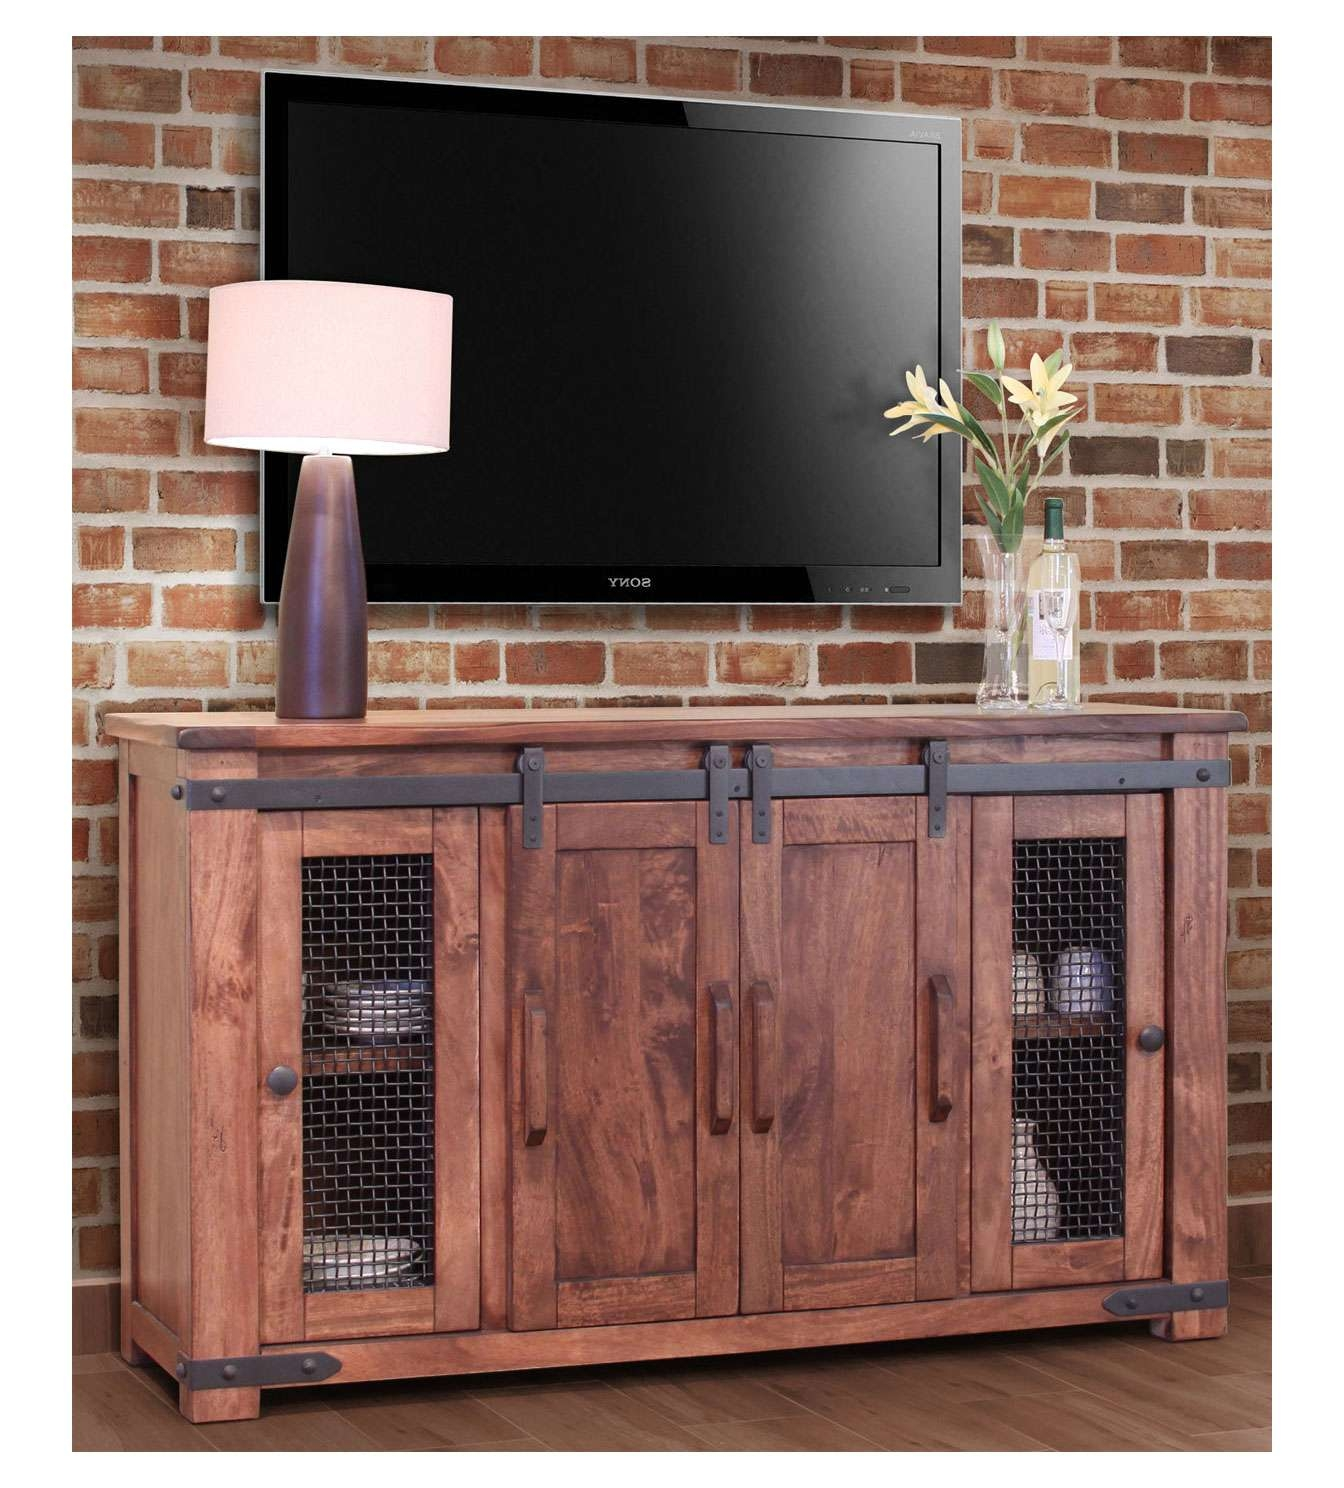 Tall Skinny Tv Stand Pertaining To Skinny Tv Stands (View 8 of 15)